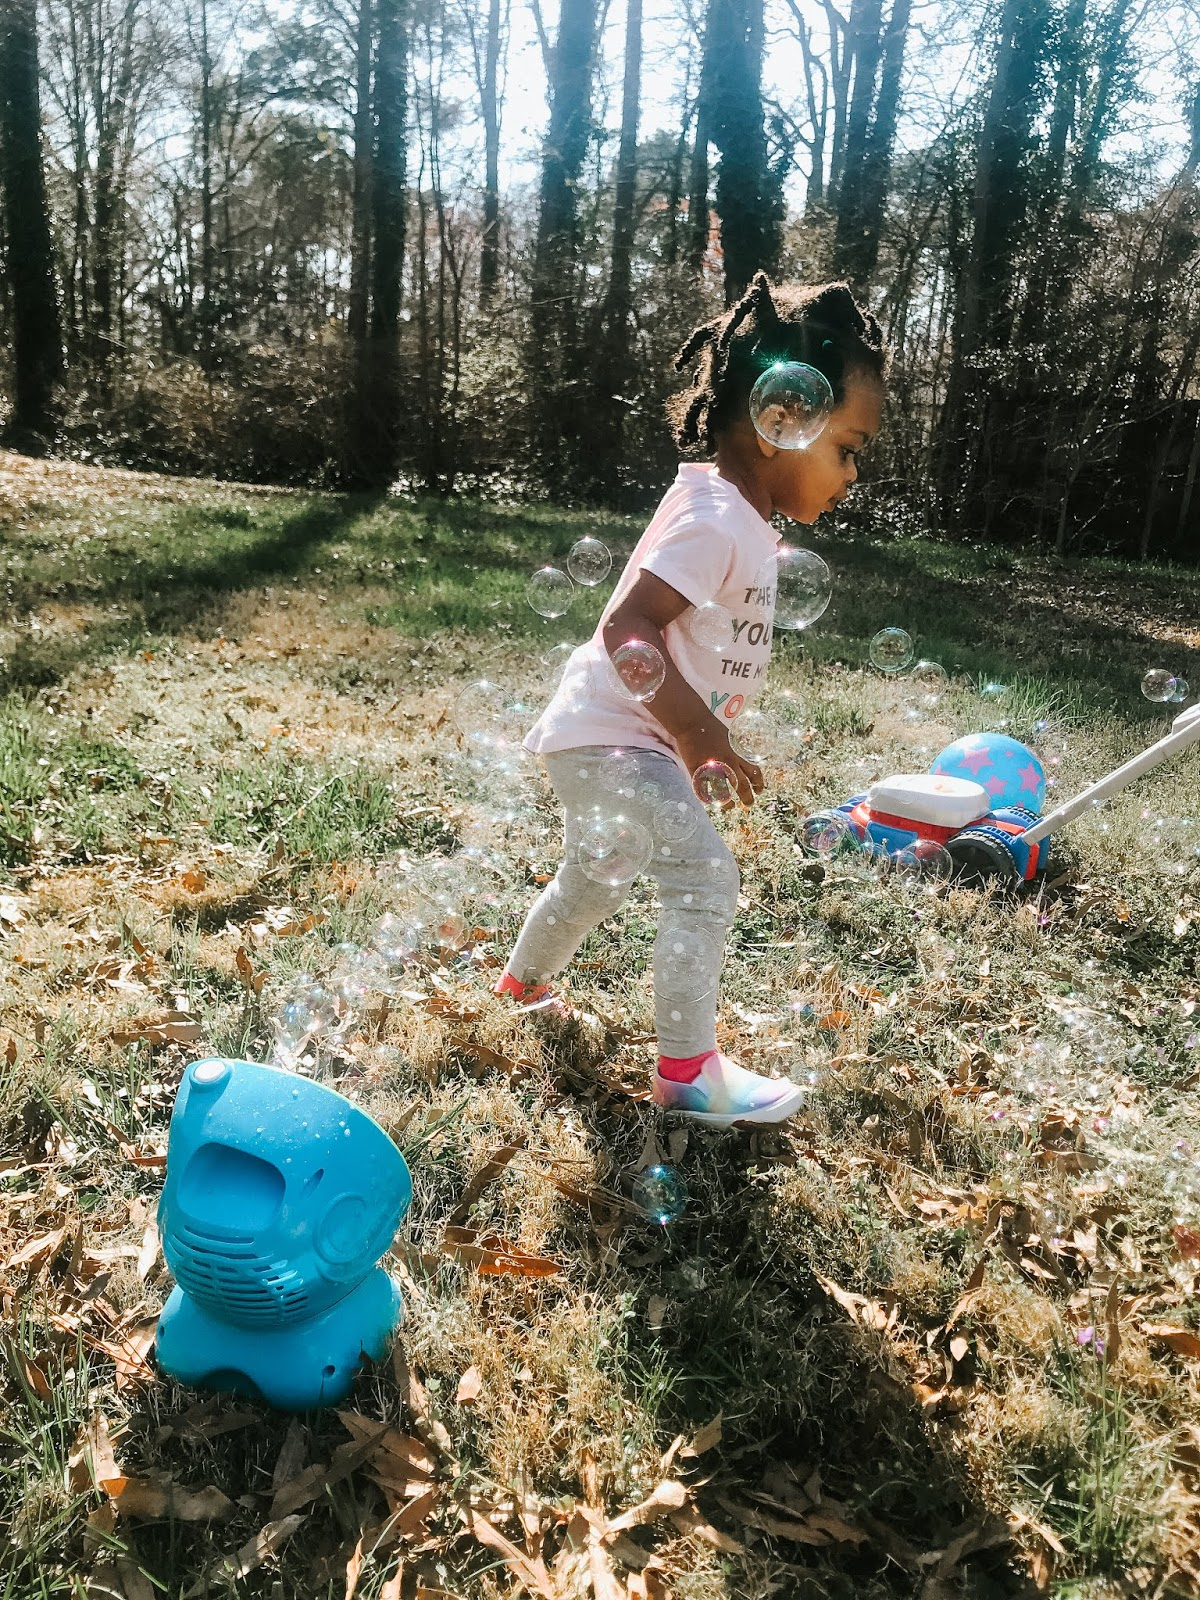 With the taste of spring weather we got this past month, it's only natural that getting out of the house and enjoying the warmer temperatures is at the front of my mind. This week I'm sharing what's on McKenna's spring bucket list featuring 30 great ideas to get out and about with your little one this season! #springbucketlist #springfun #springoutings #motherhood